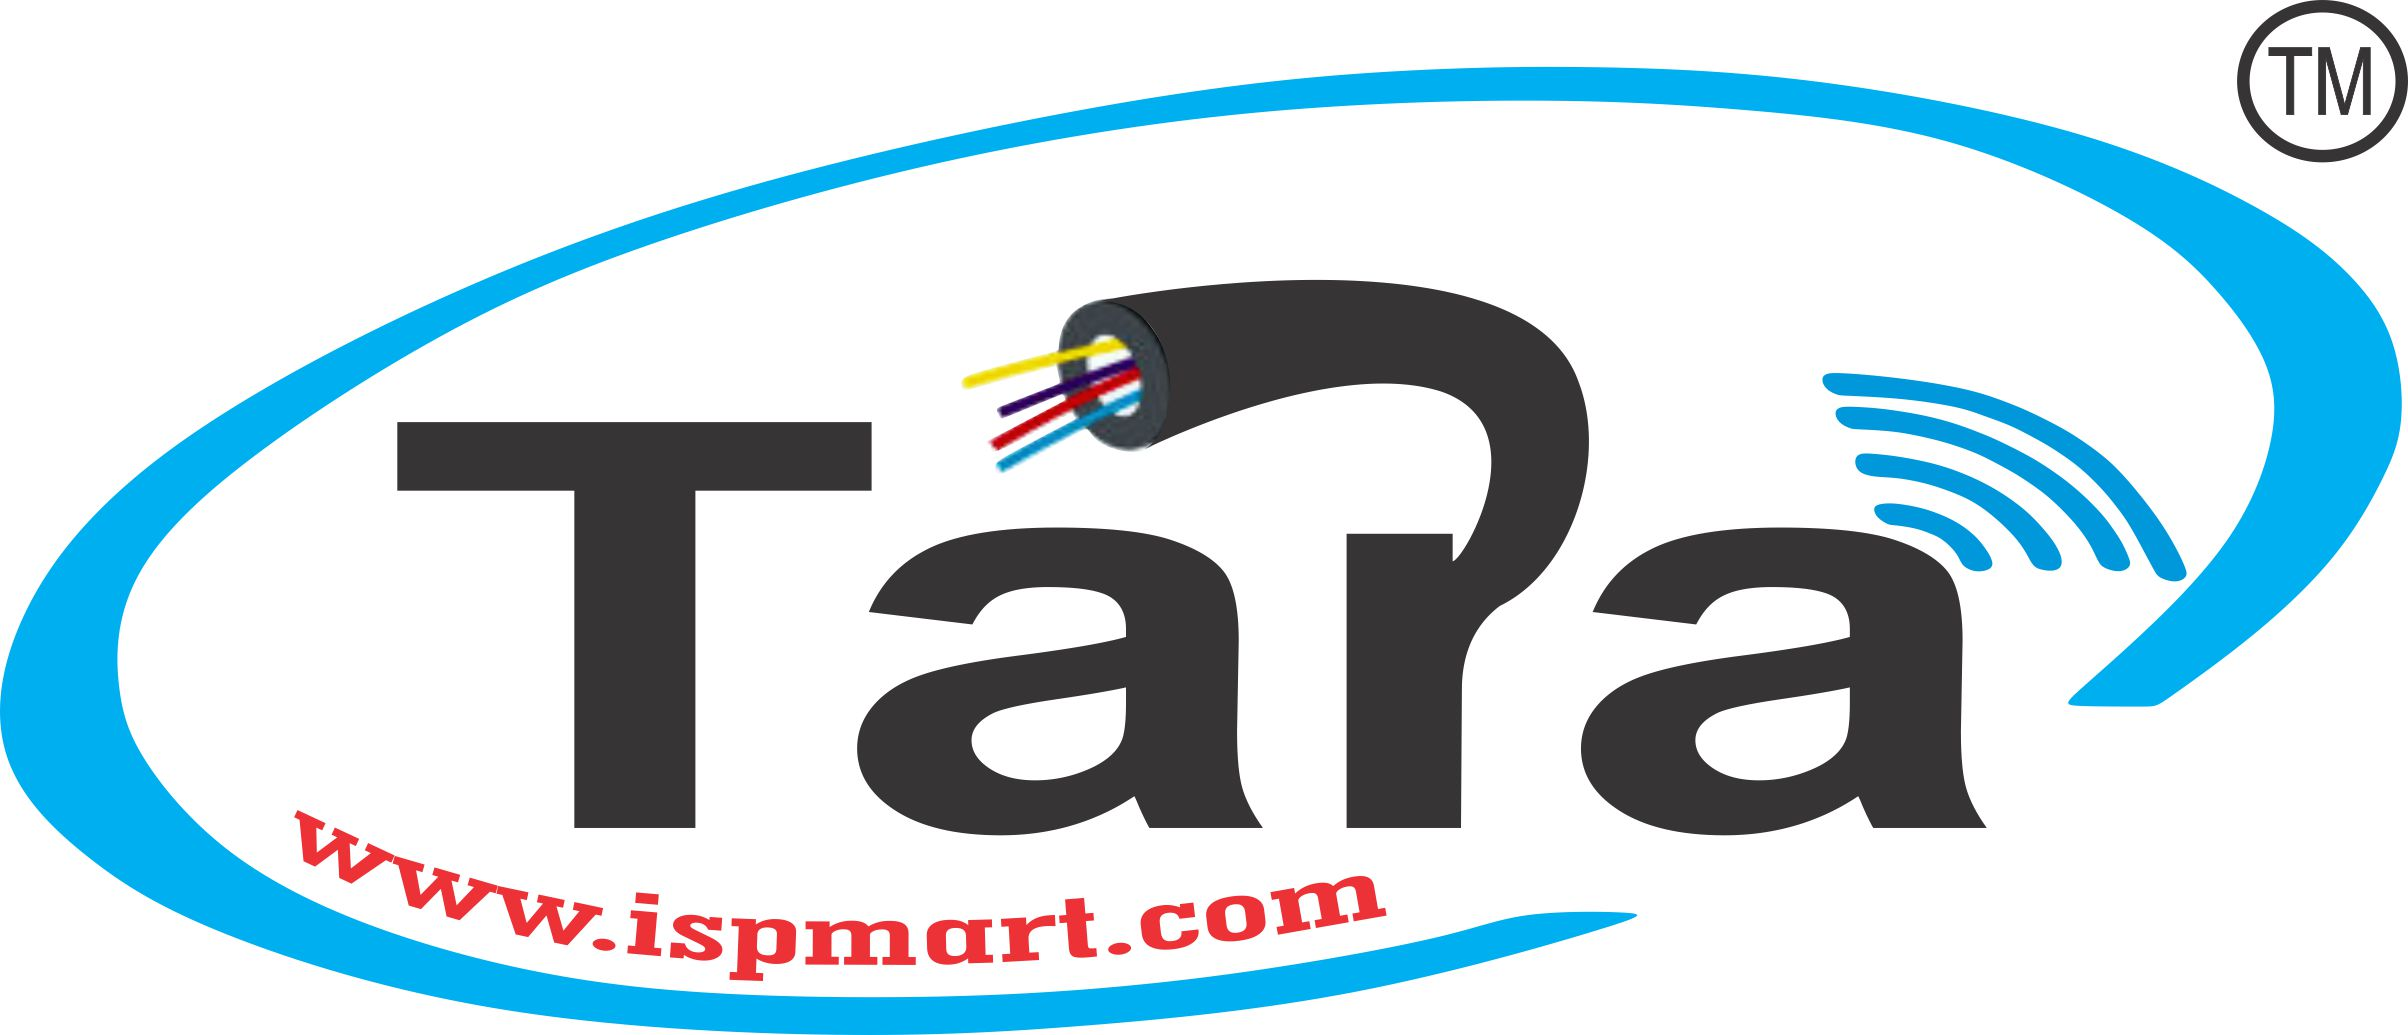 ispmart.com ( A Unit of TARA CONSULTANTS PVT. LTD )